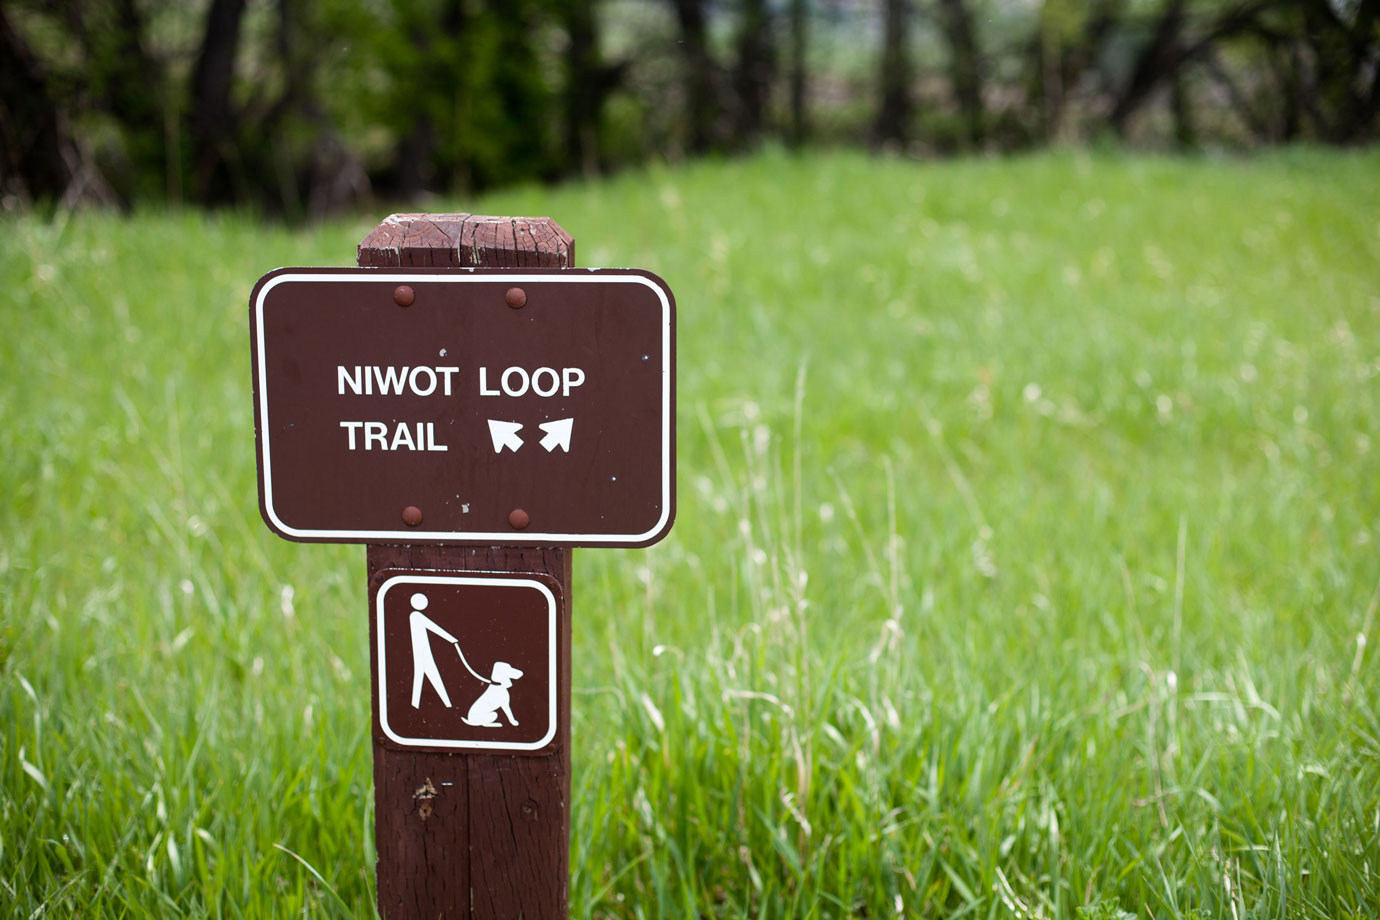 Niwot Loop Trail